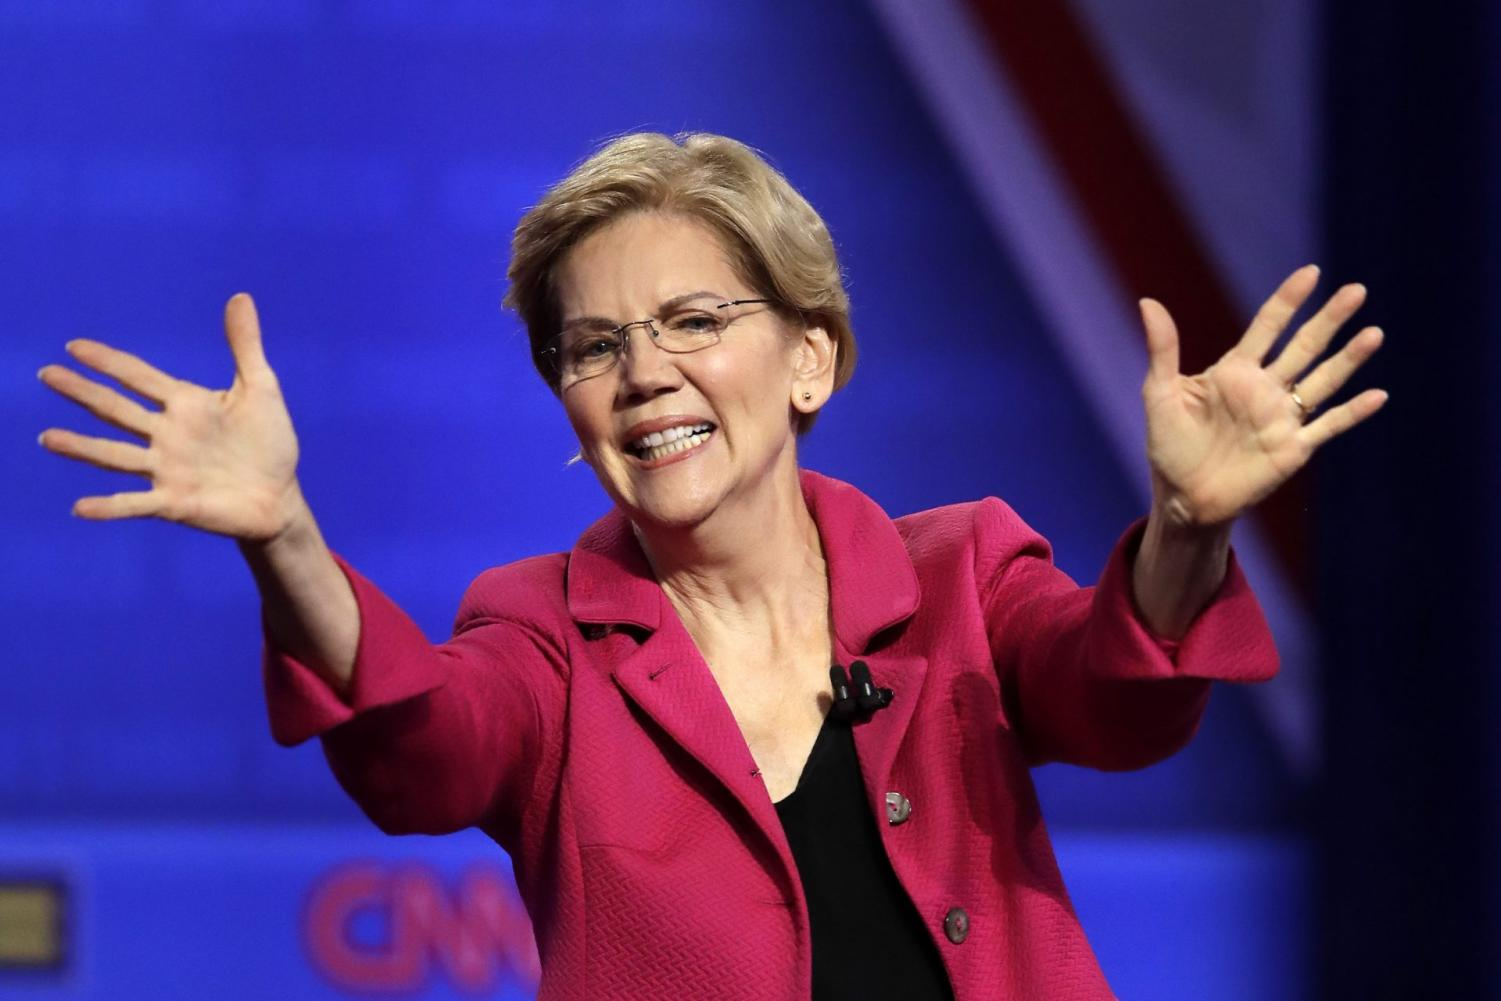 In this Oct. 10, 2019, photo, Democratic presidential candidate Sen. Elizabeth Warren, D-Mass., speaks during the Power of our Pride Town Hall in Los Angeles.